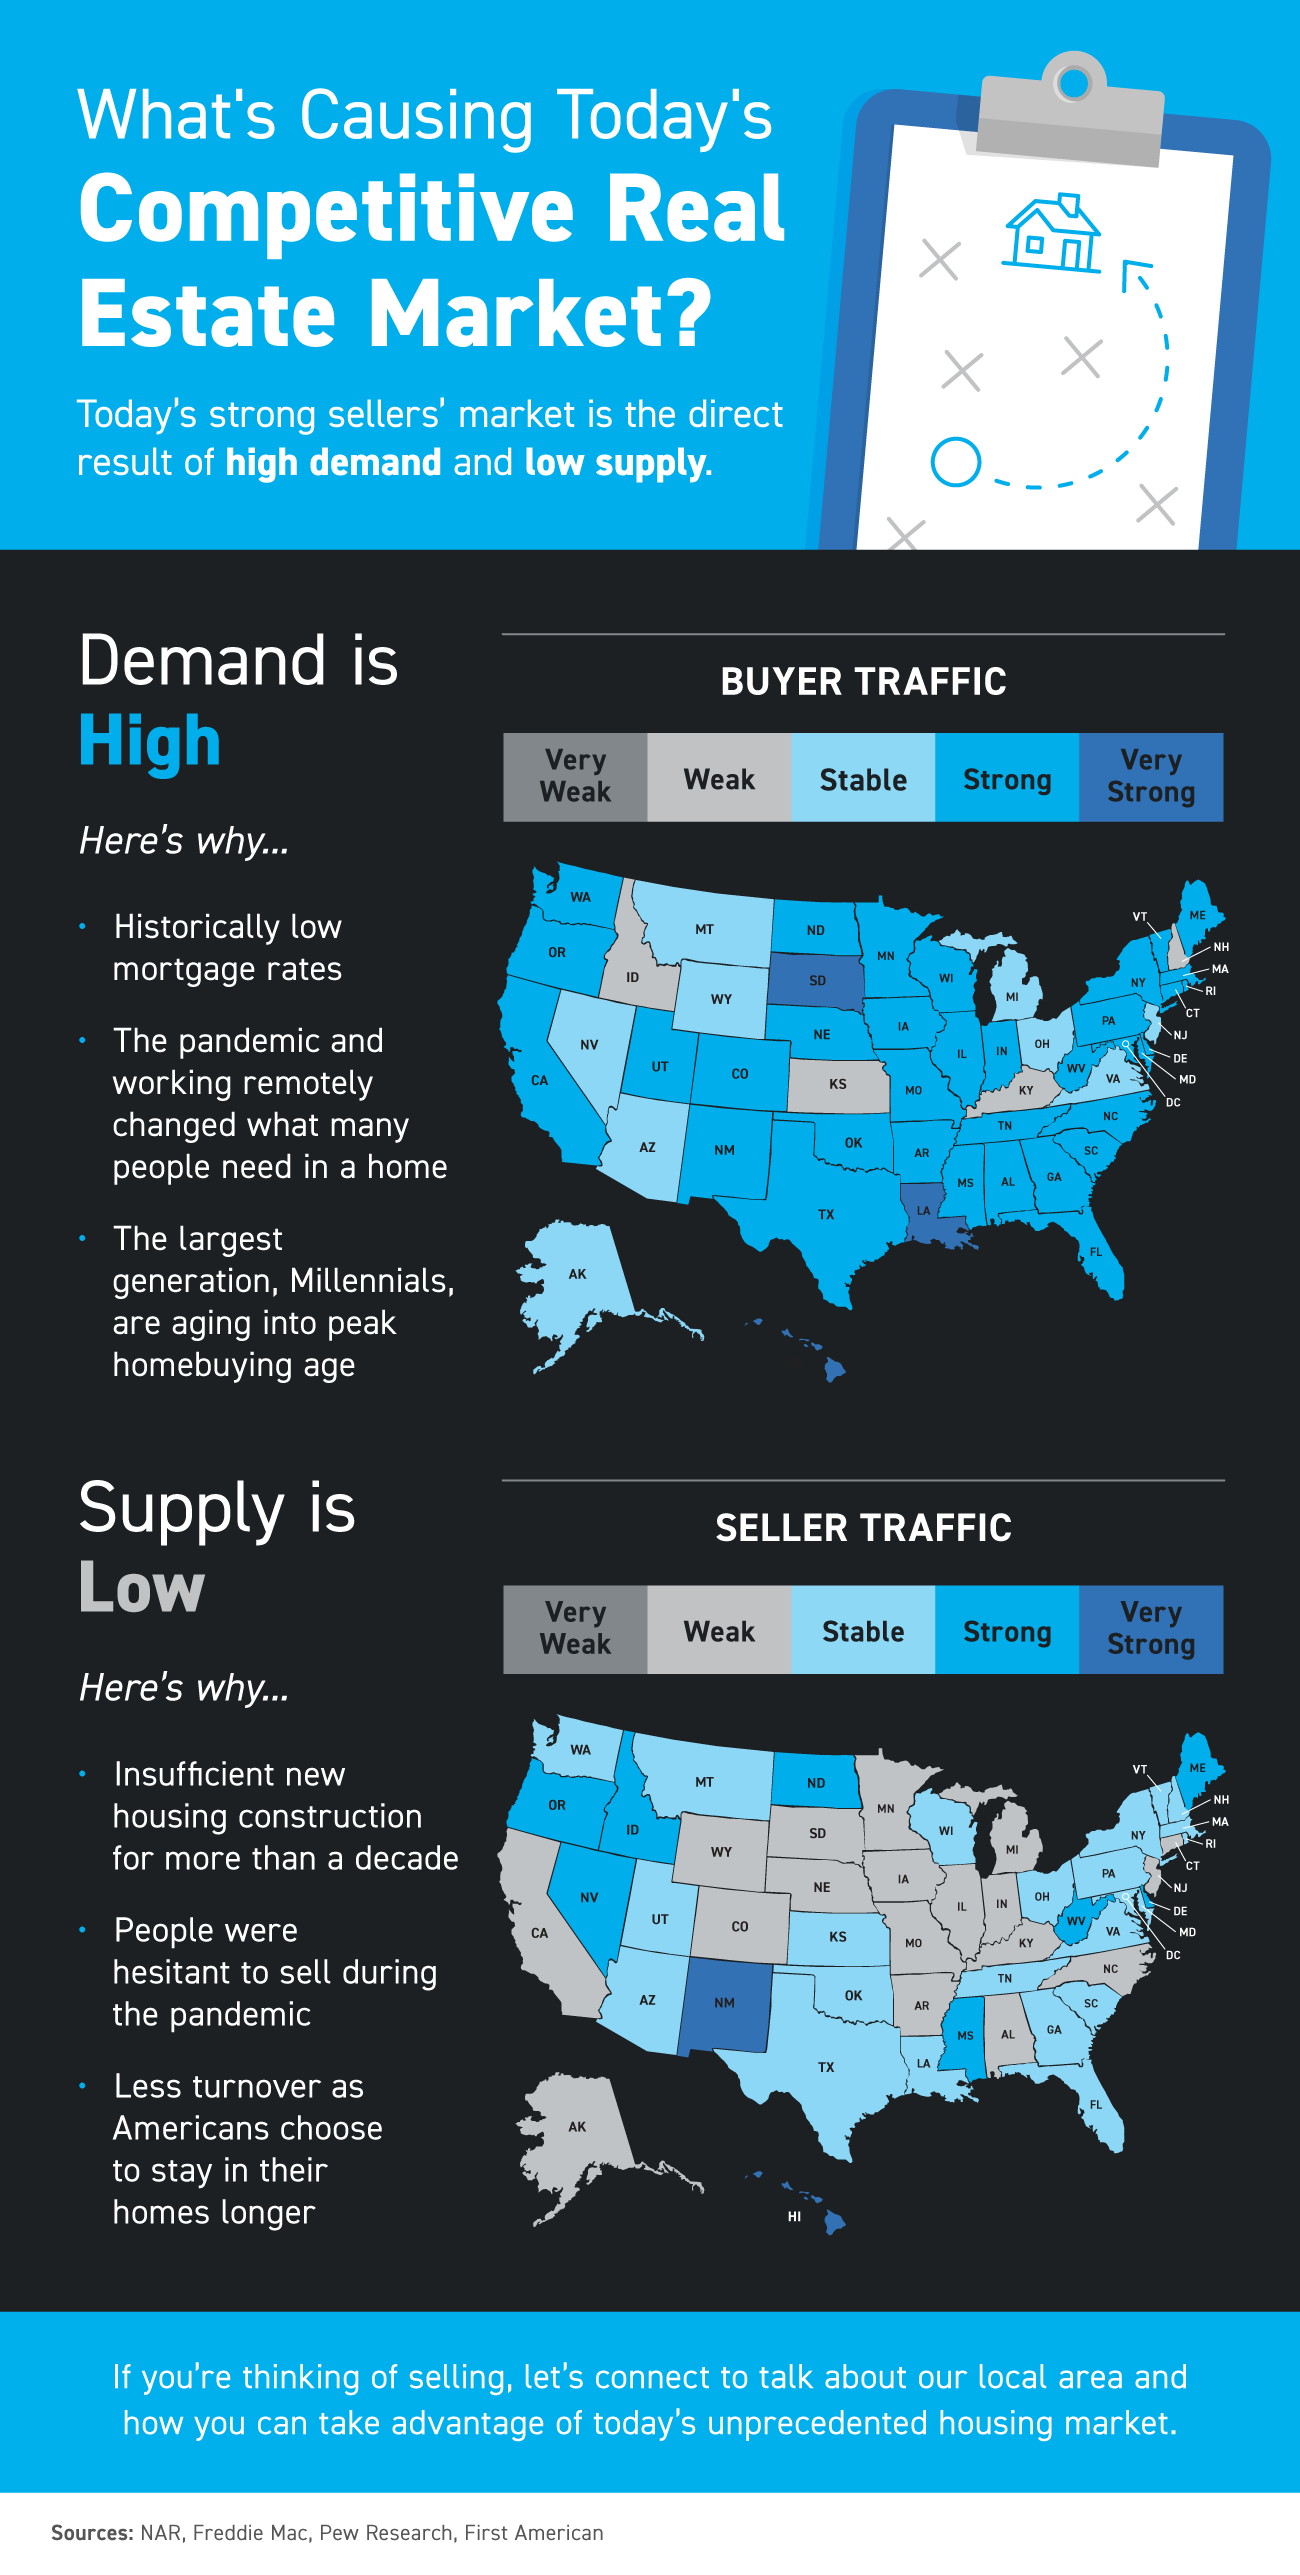 What's Causing Today's Competitive Real Estate Market? [INFOGRAPHIC] | Bridge Builders